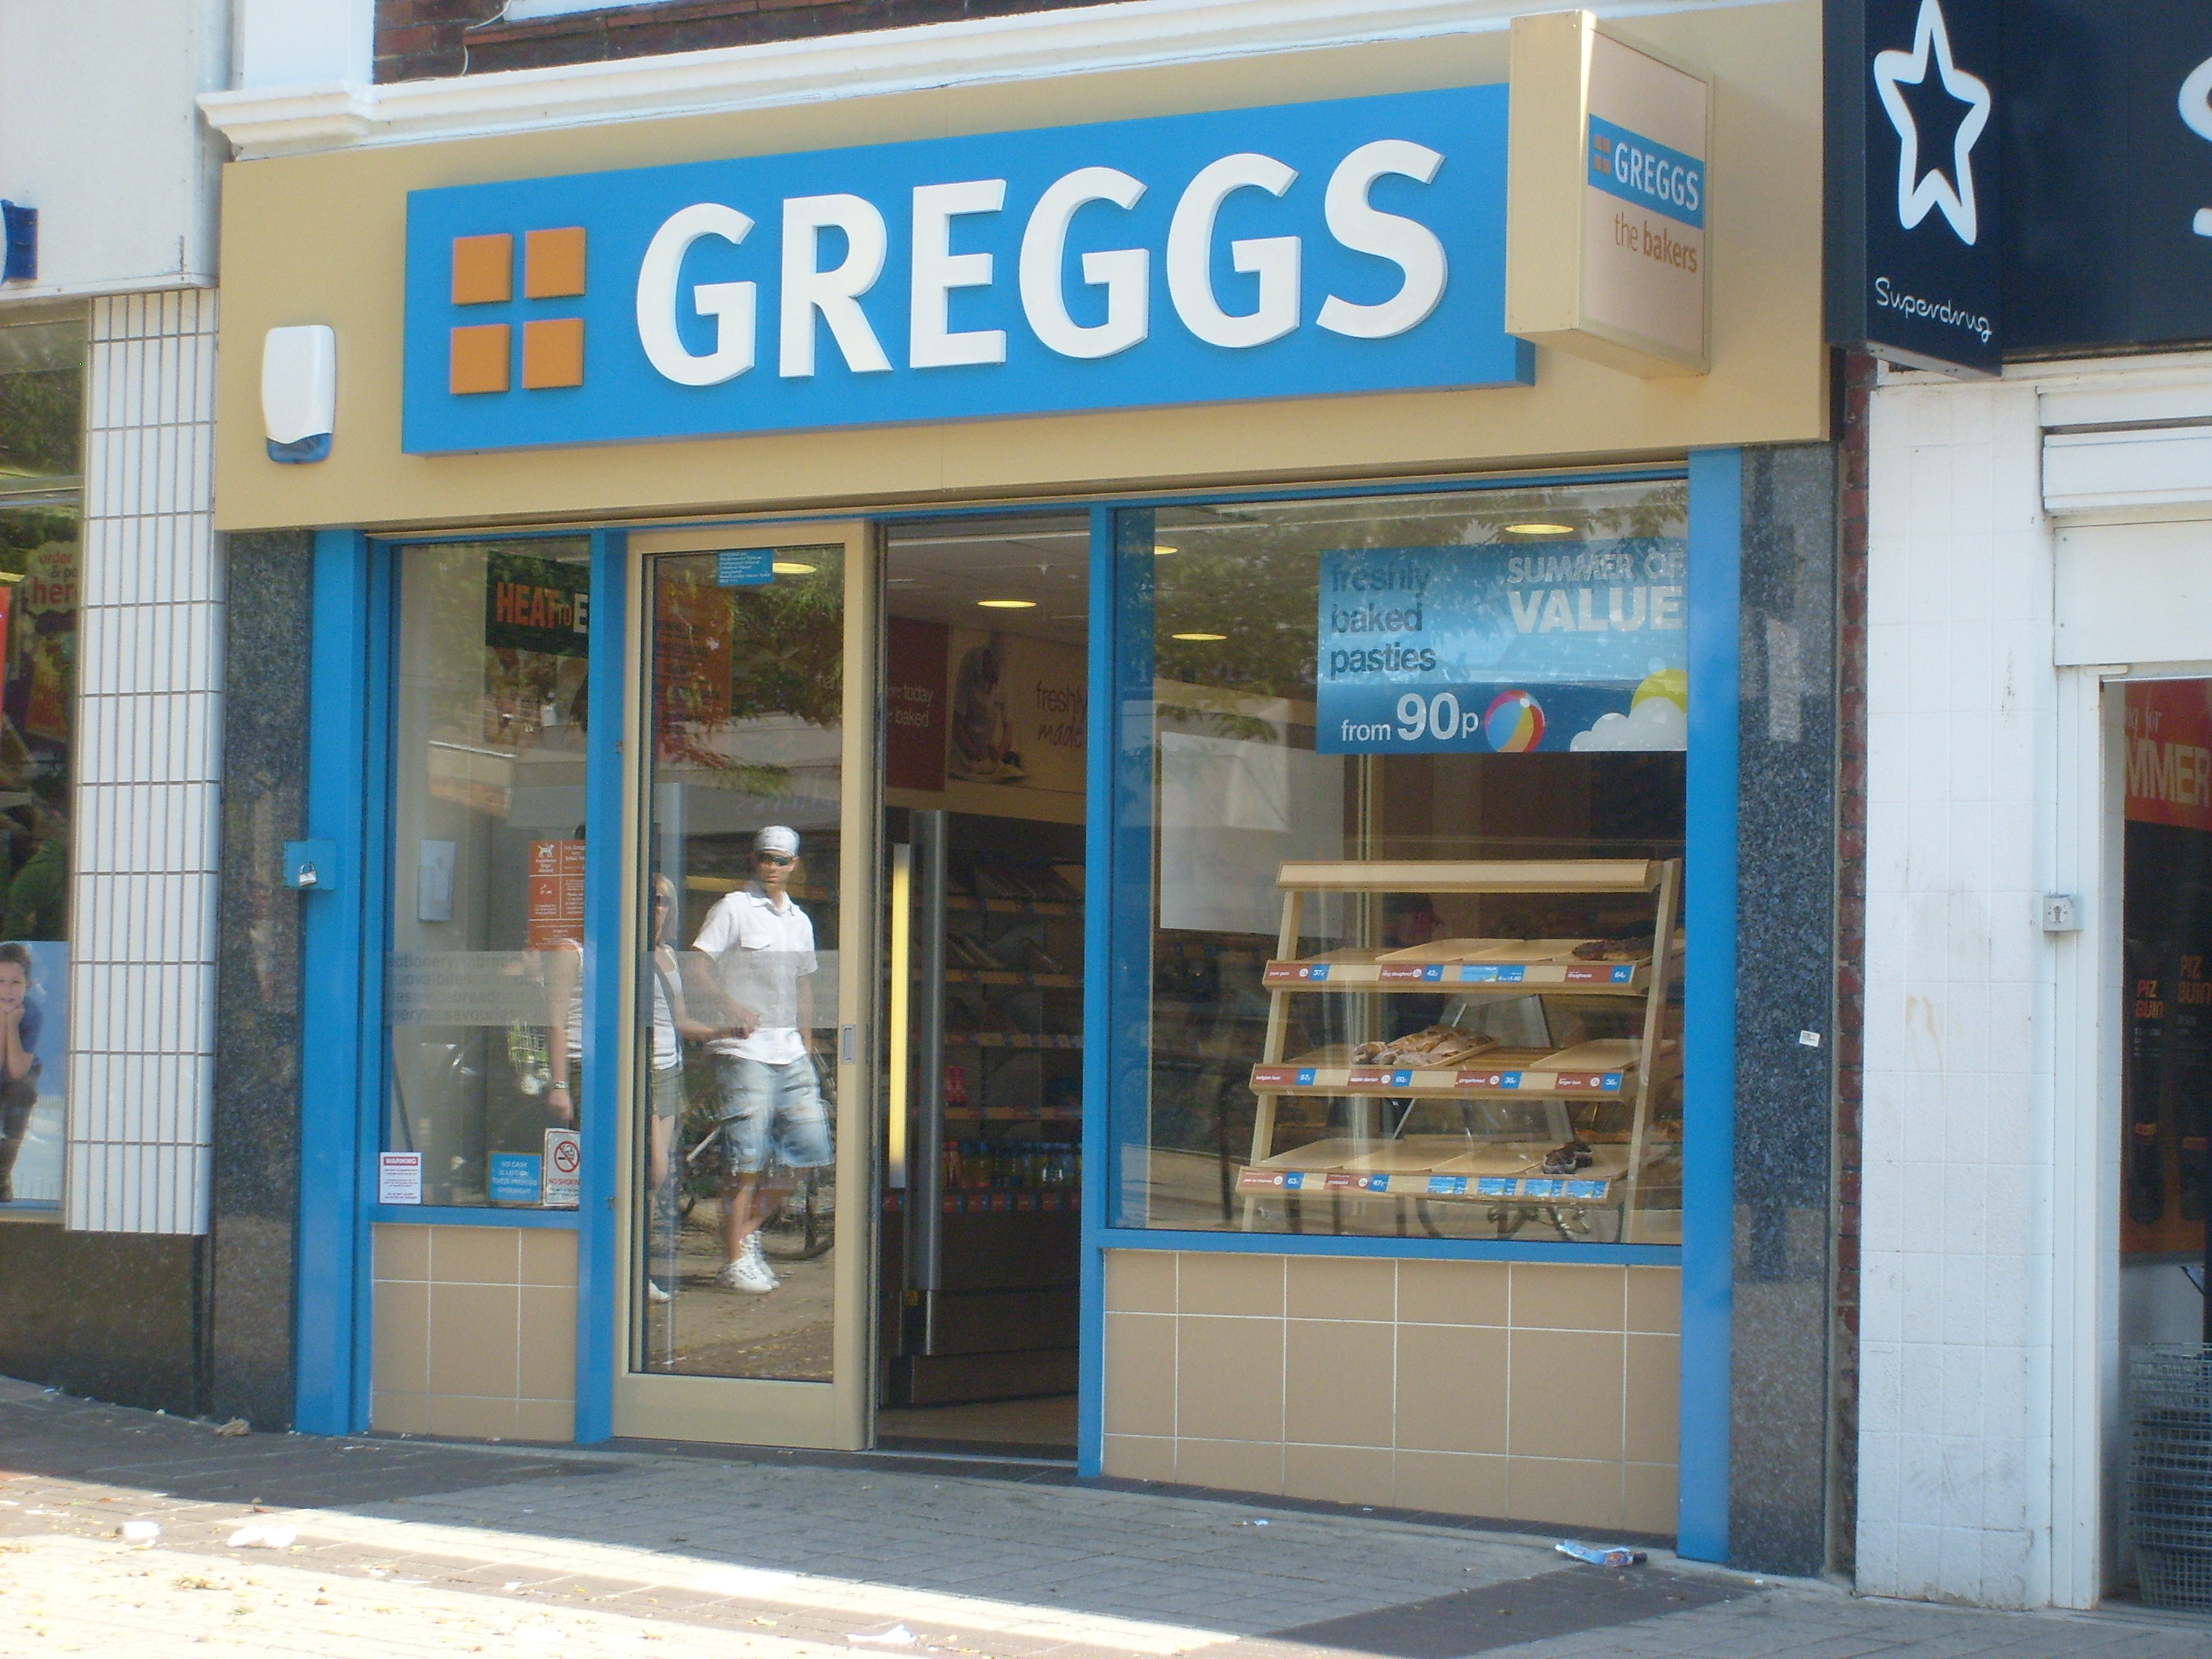 English: A modern Greggs the Bakery store front.